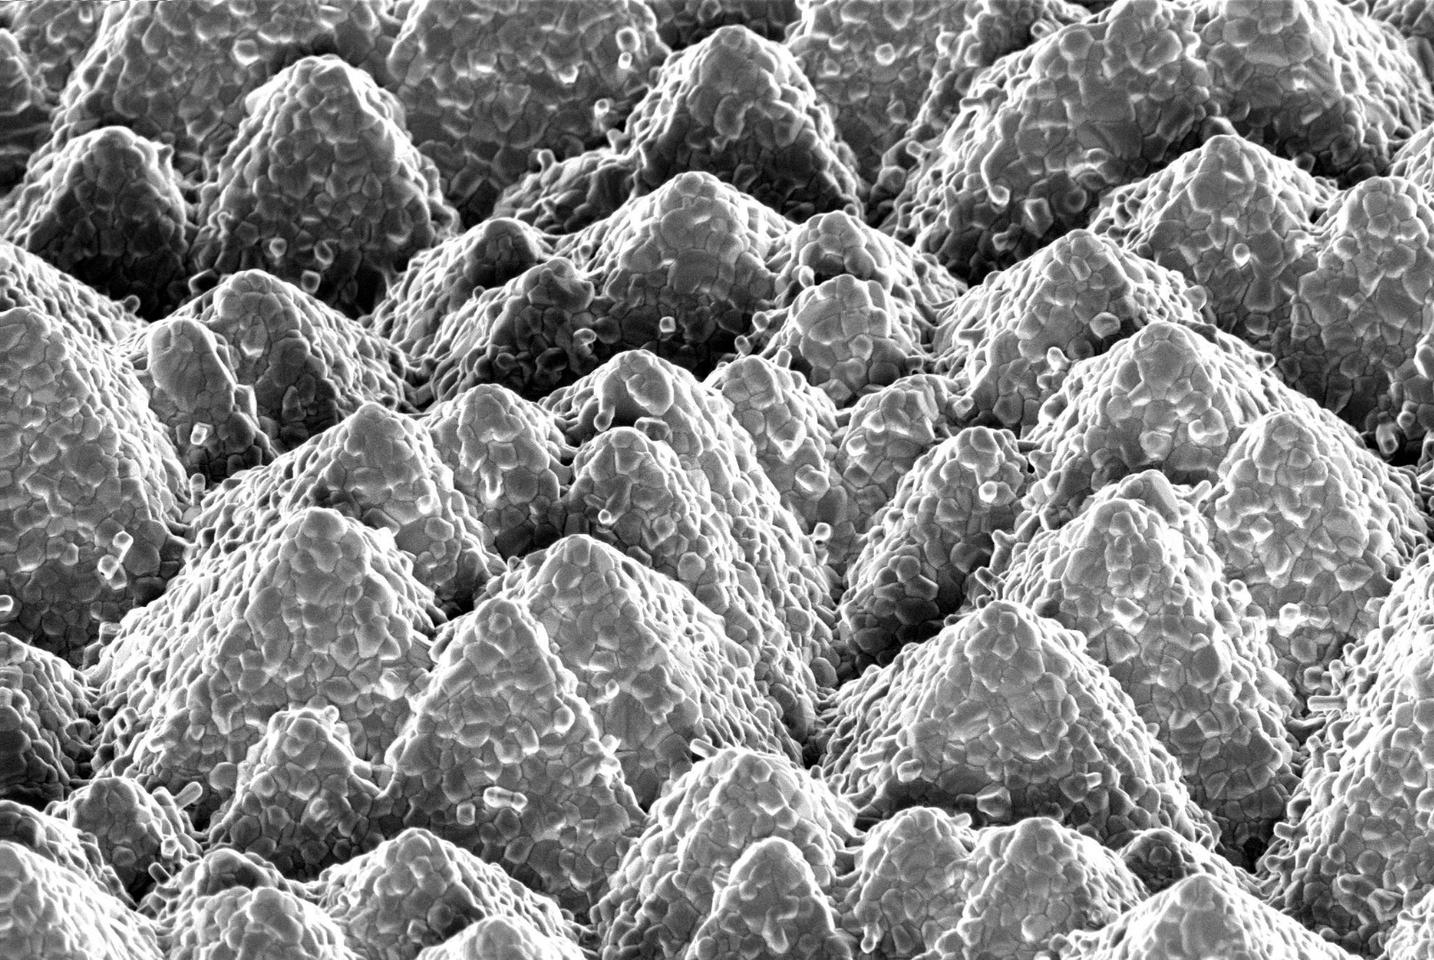 The pyramid shapes of silicon'ssurface structure is clear in this microscope image